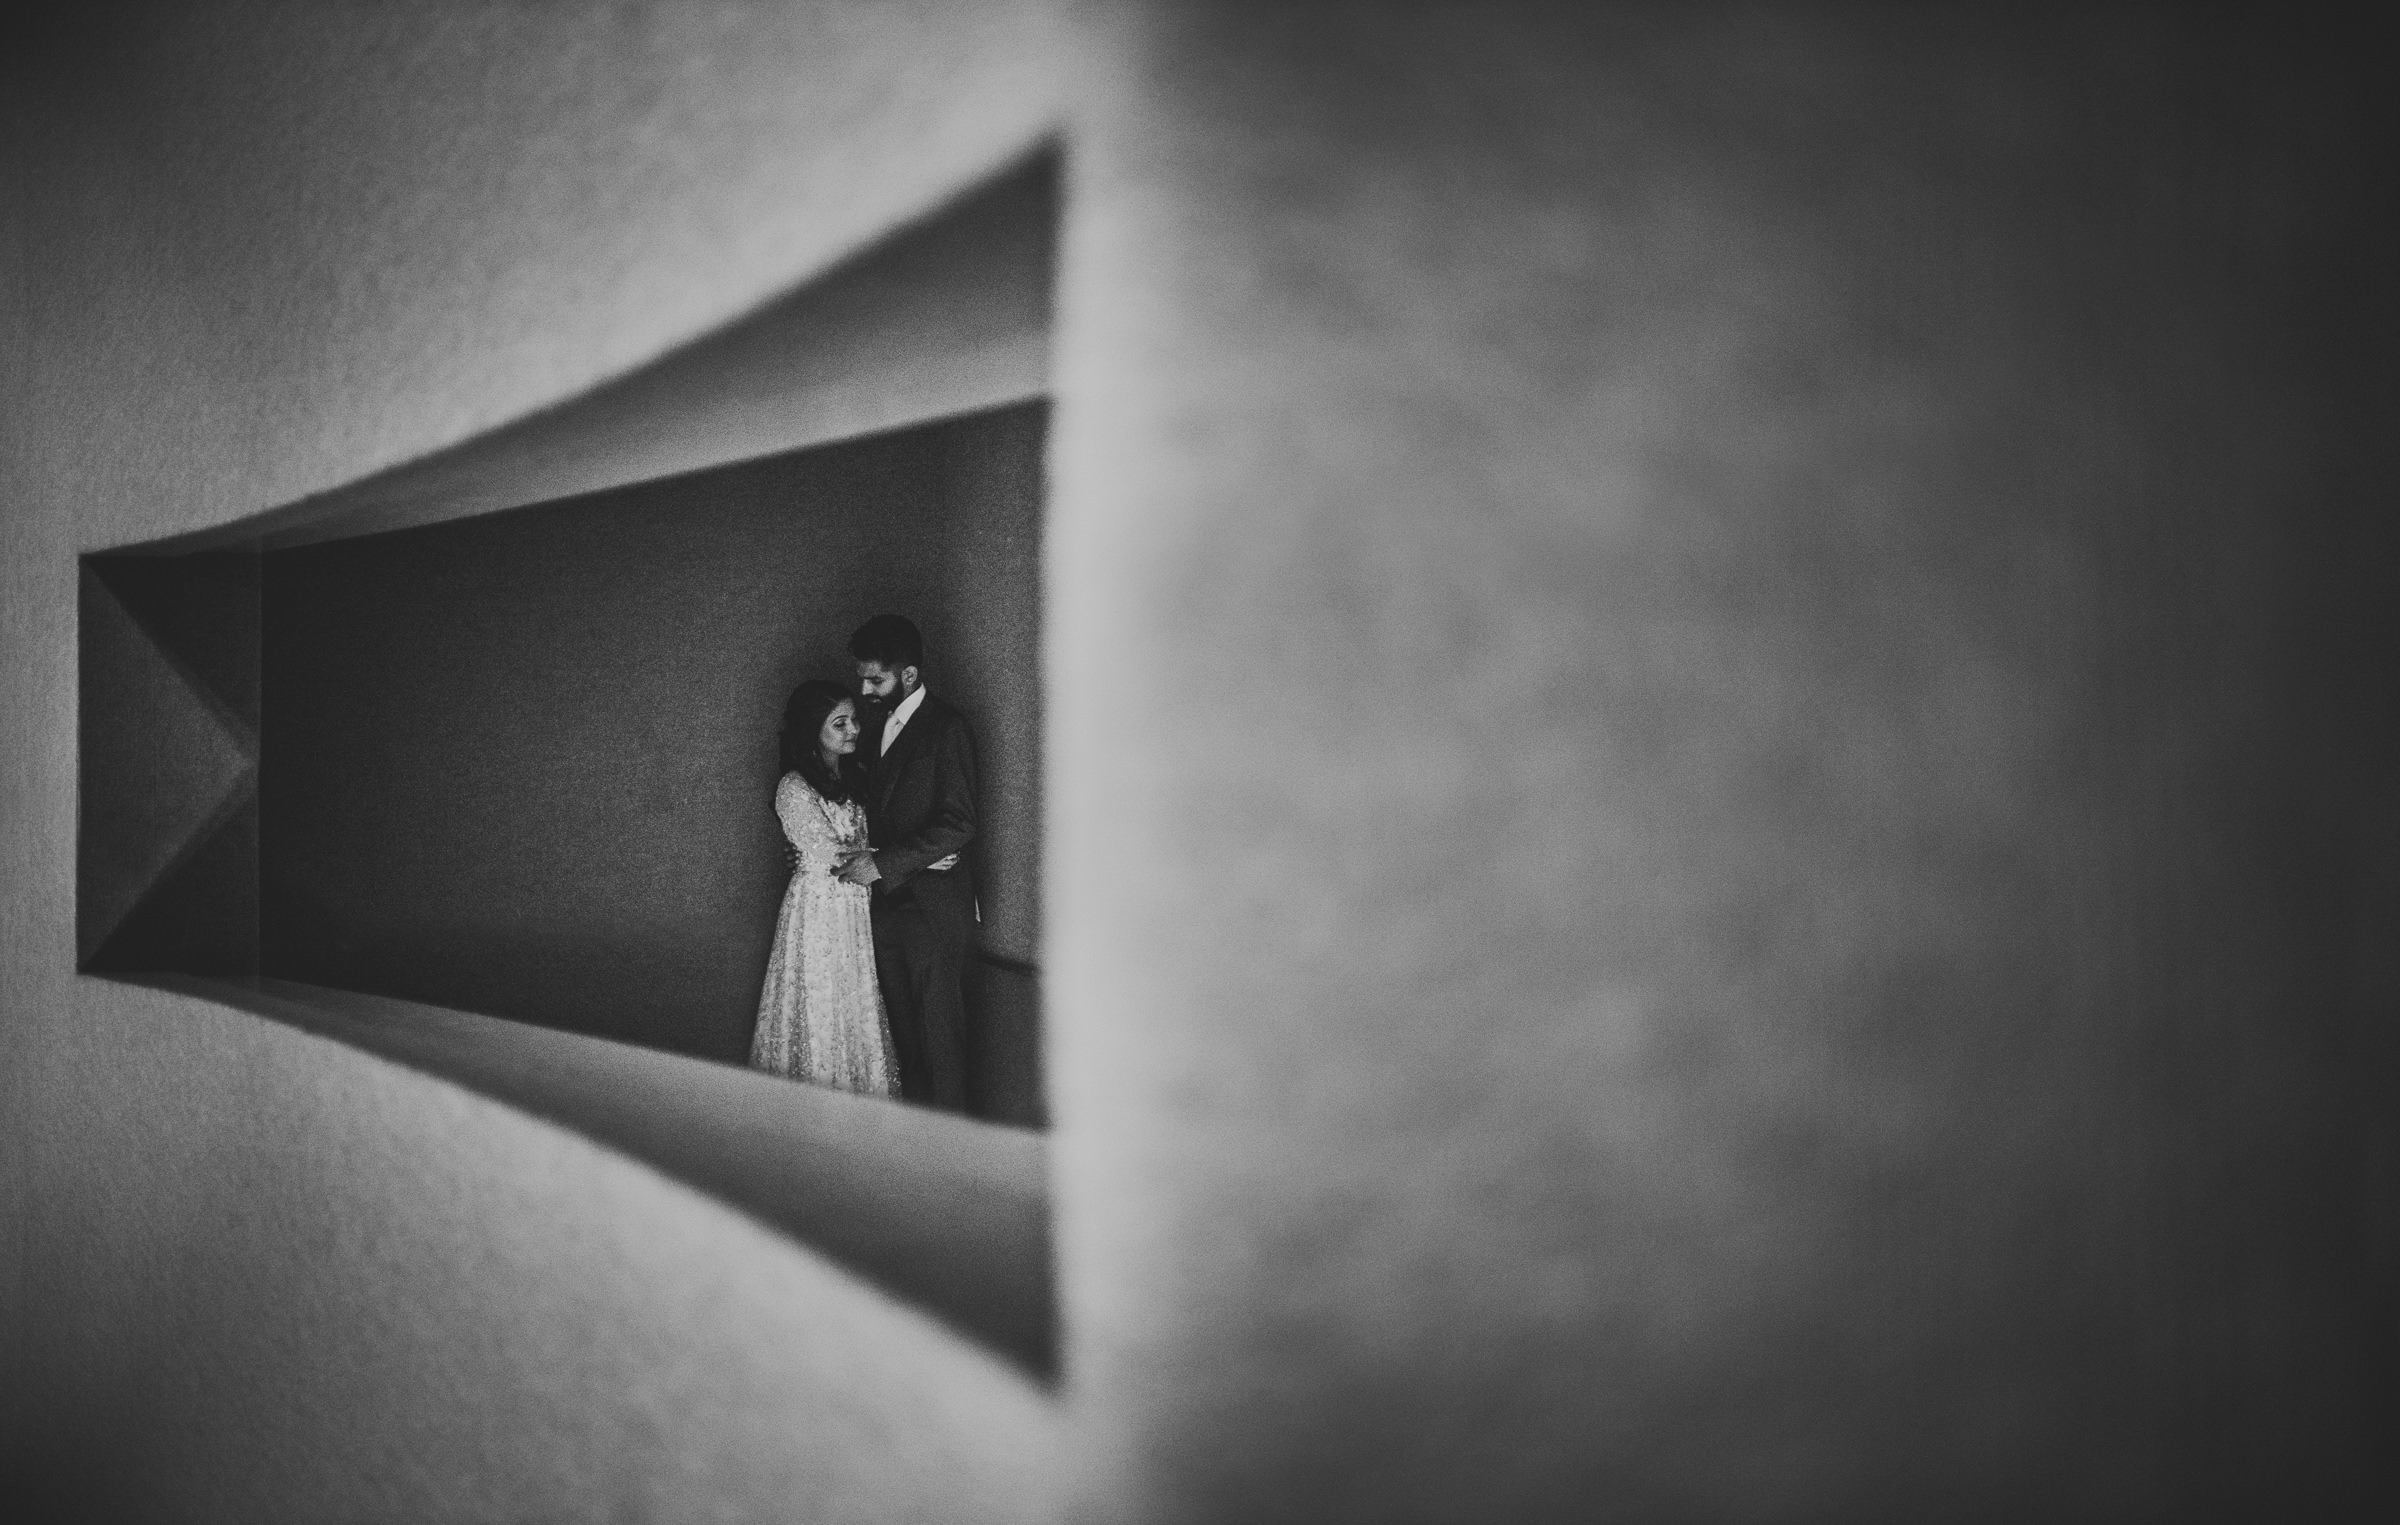 Couple embraces in curved stone window - photo by Sam Hurd - DC